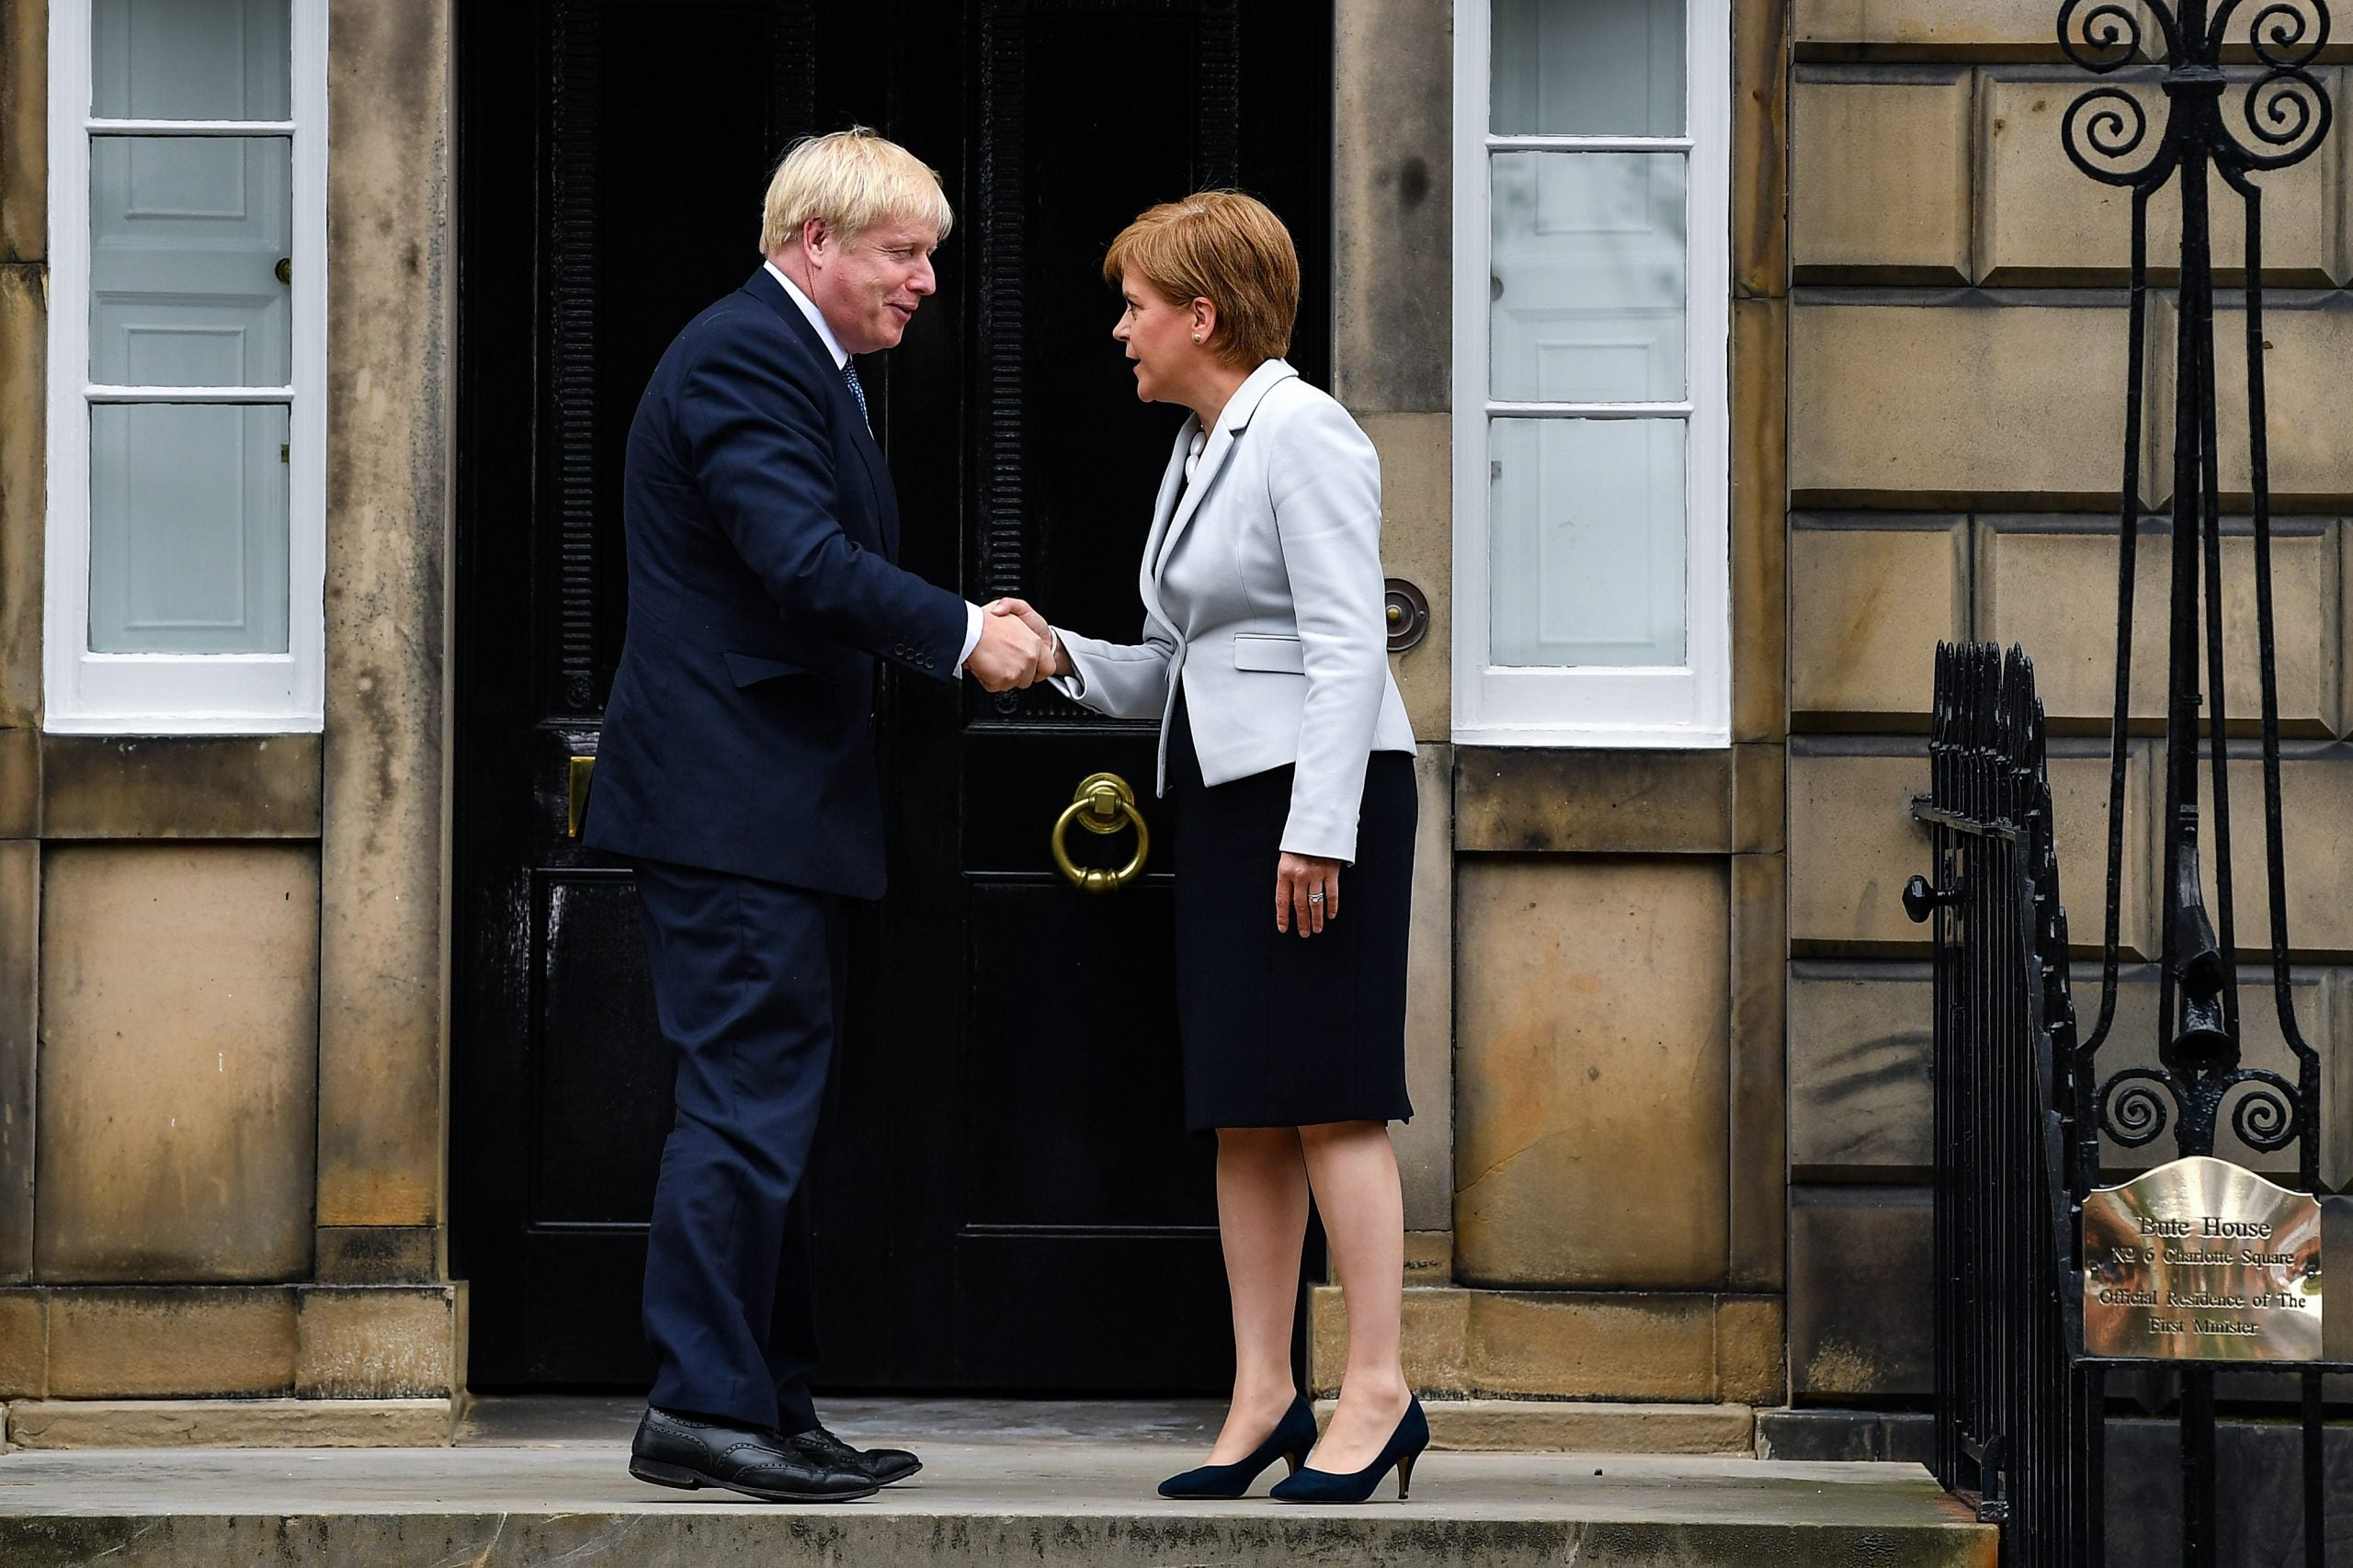 Don't be so sure a Boris Johnson government means the end of the Union